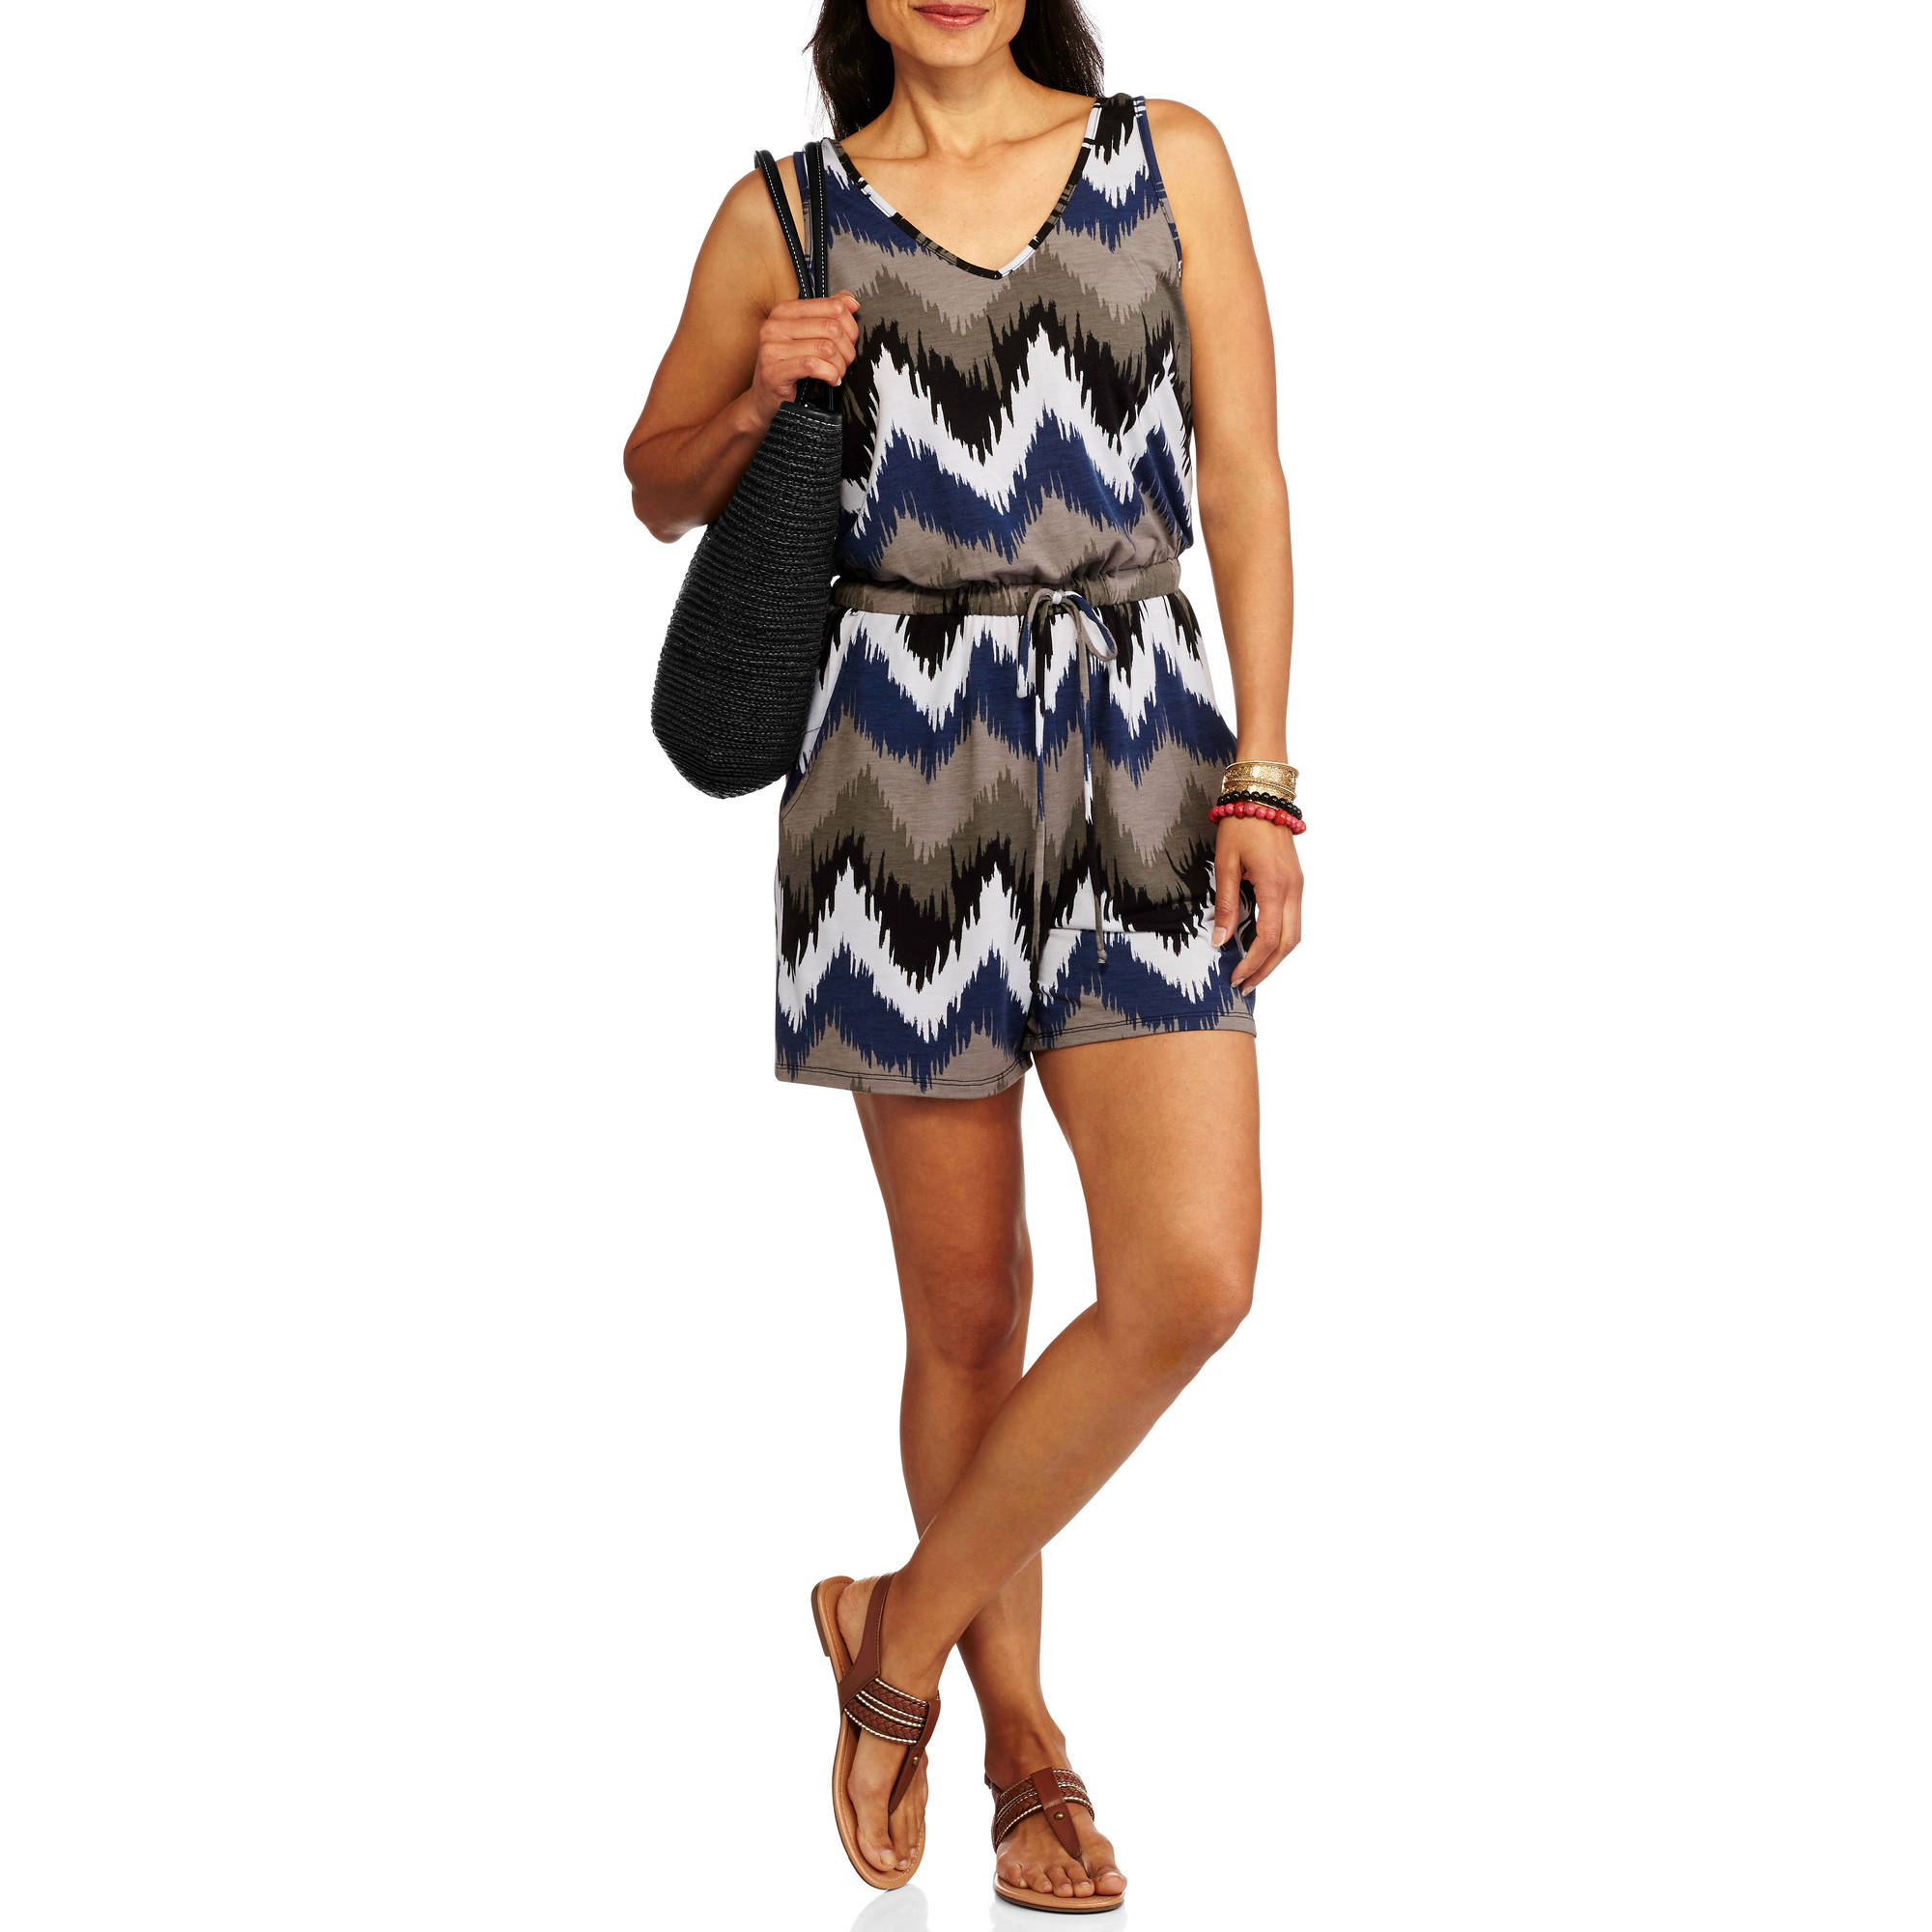 Allison Brittney Women's V-neck Blouson Short Printed Romper